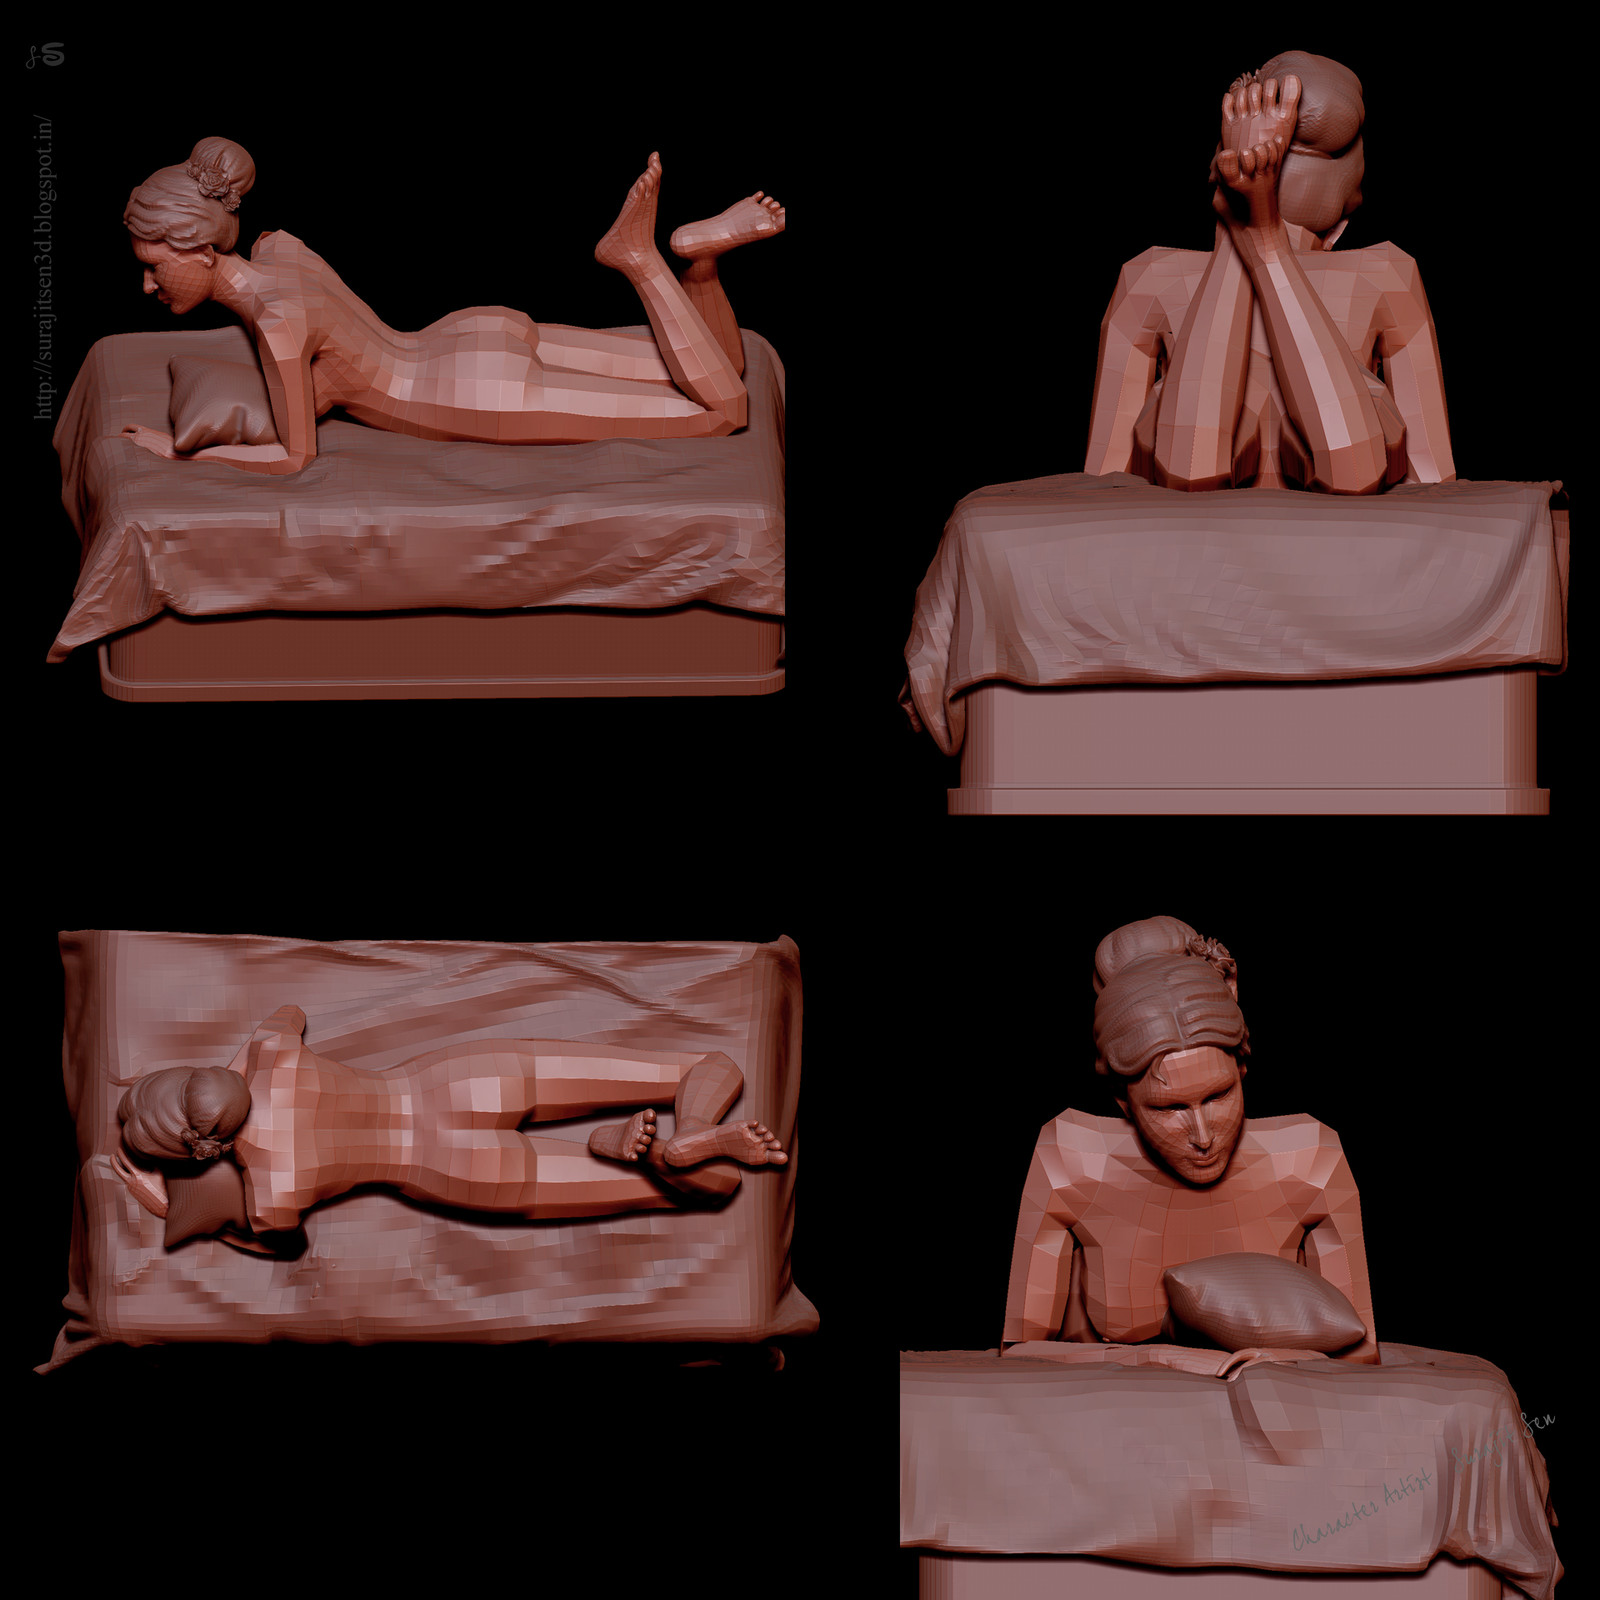 """Printscreen. My recent free time work ....Stone finish Female Sculpt.... """"Aphrodite - the mark of beauty"""". Wish to share  .....:)"""